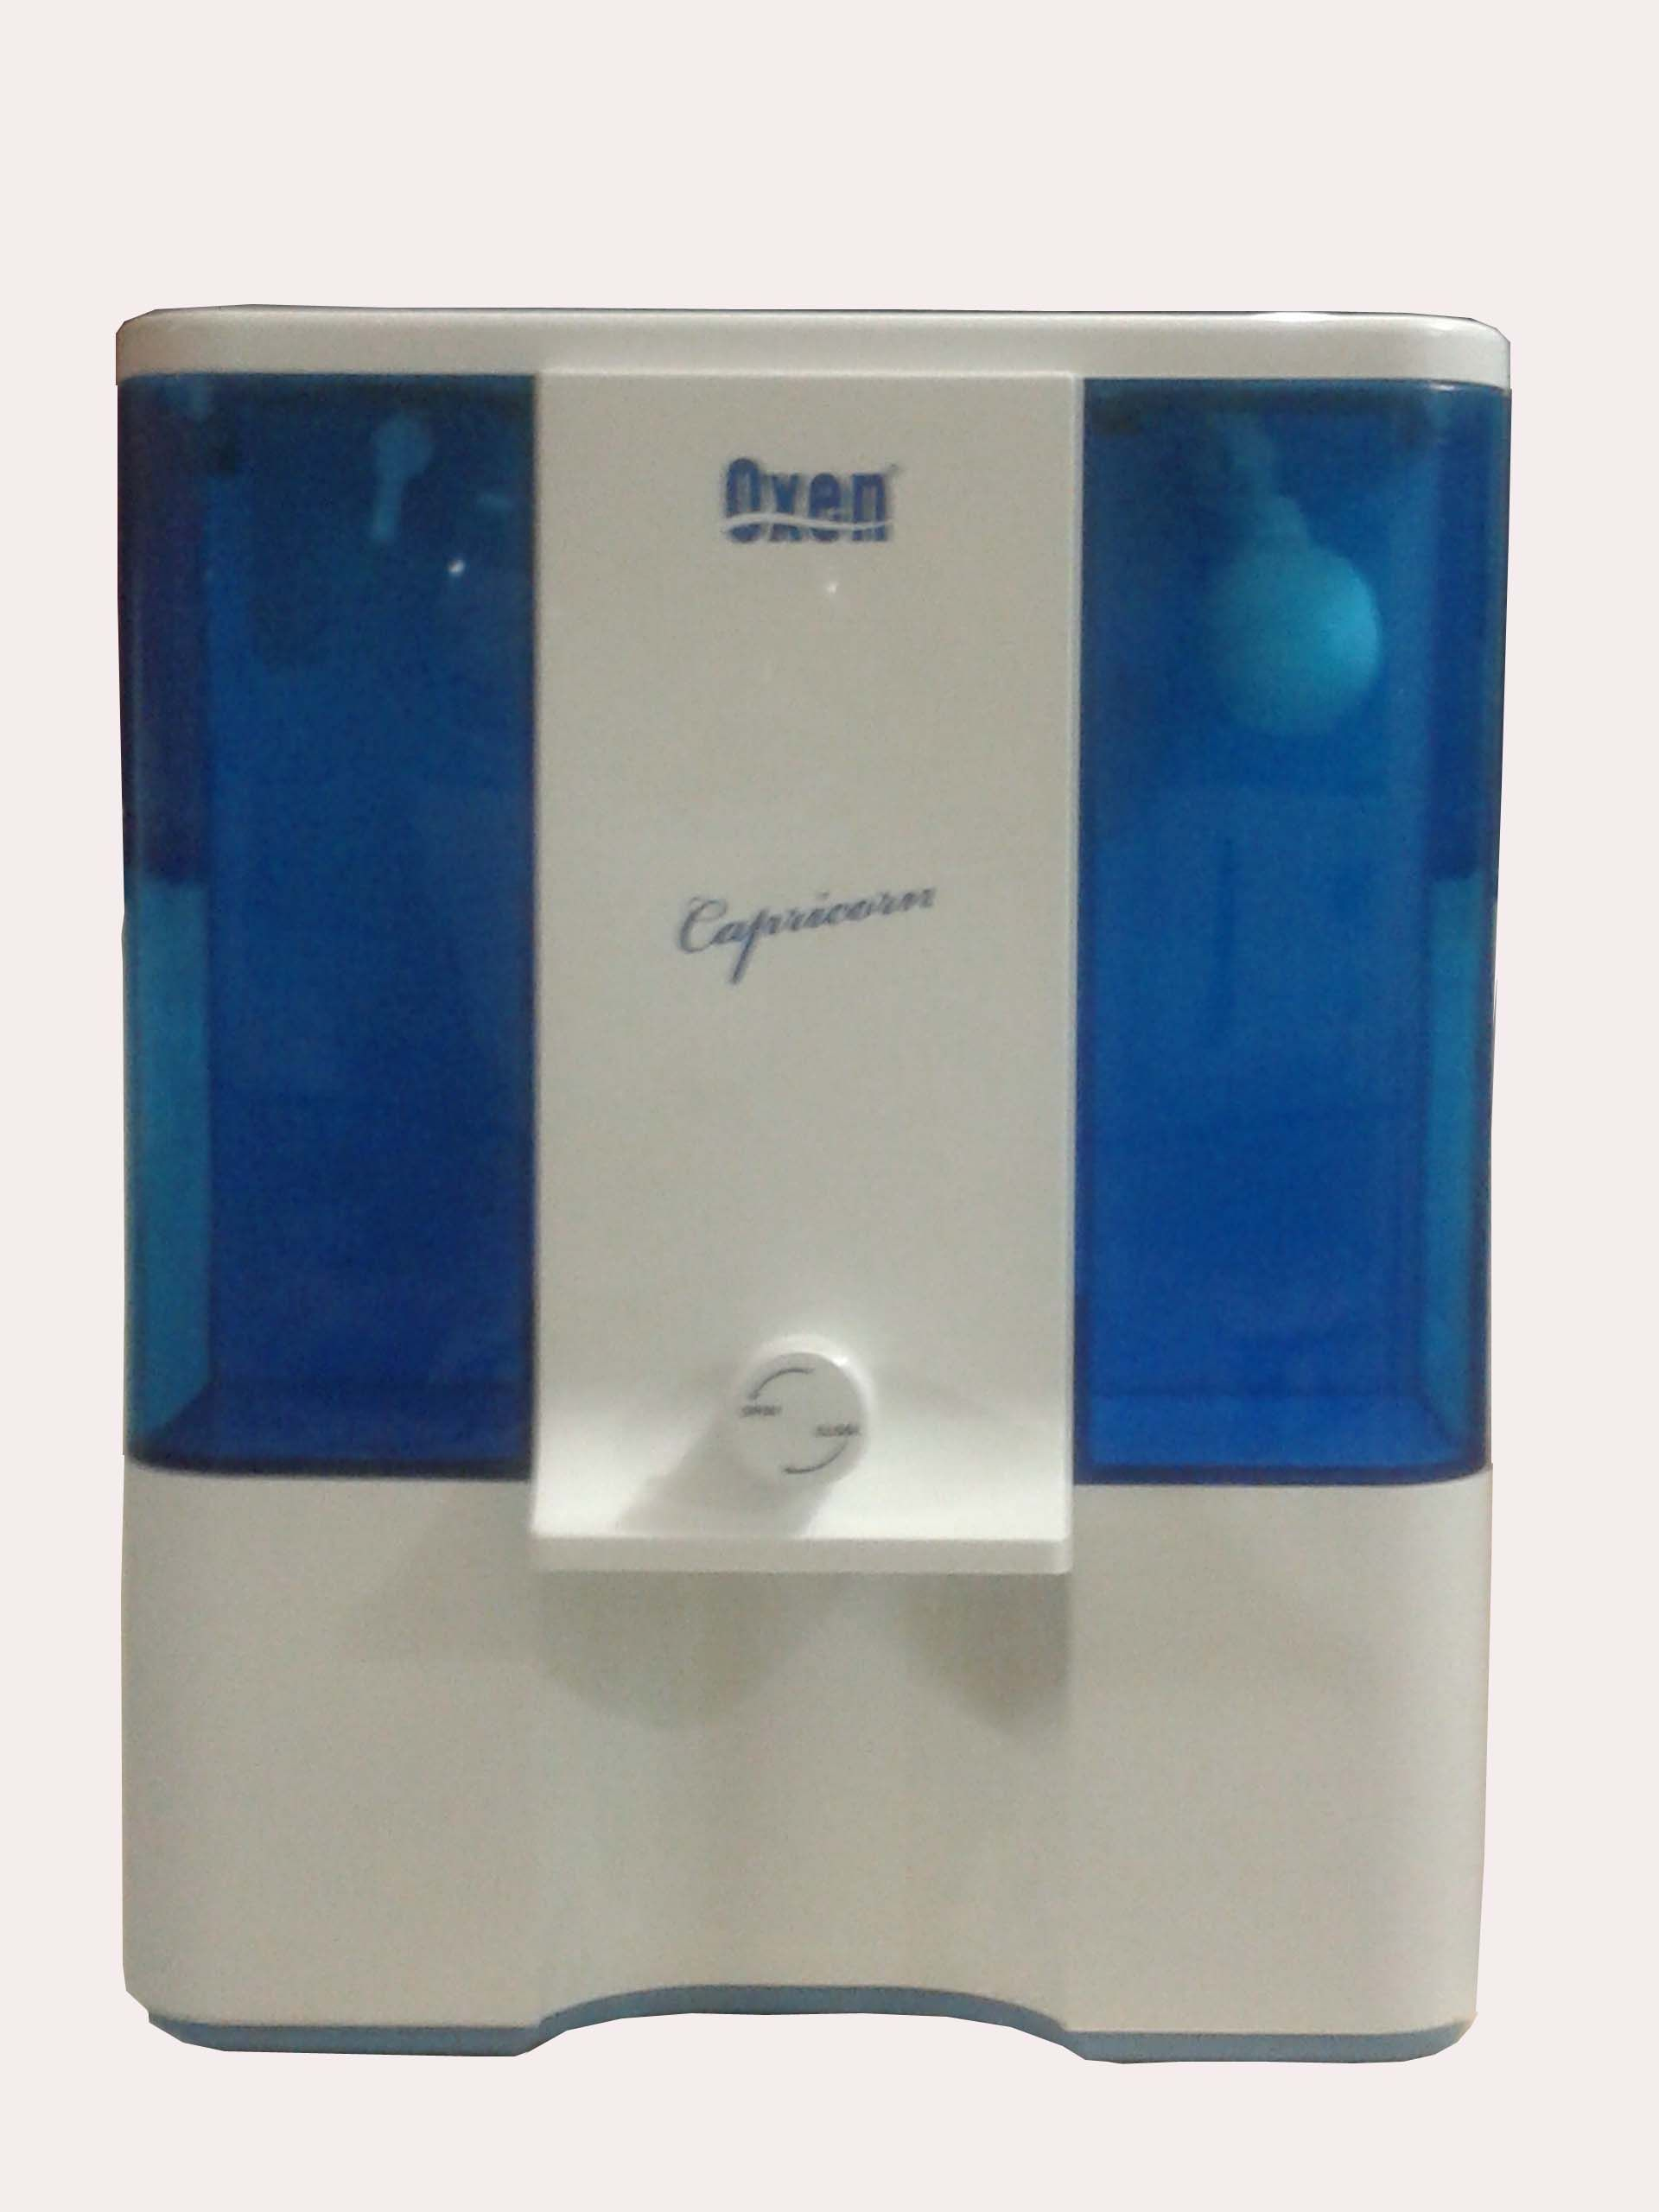 Product NameCapricon Model Reverse Osmosis Technology